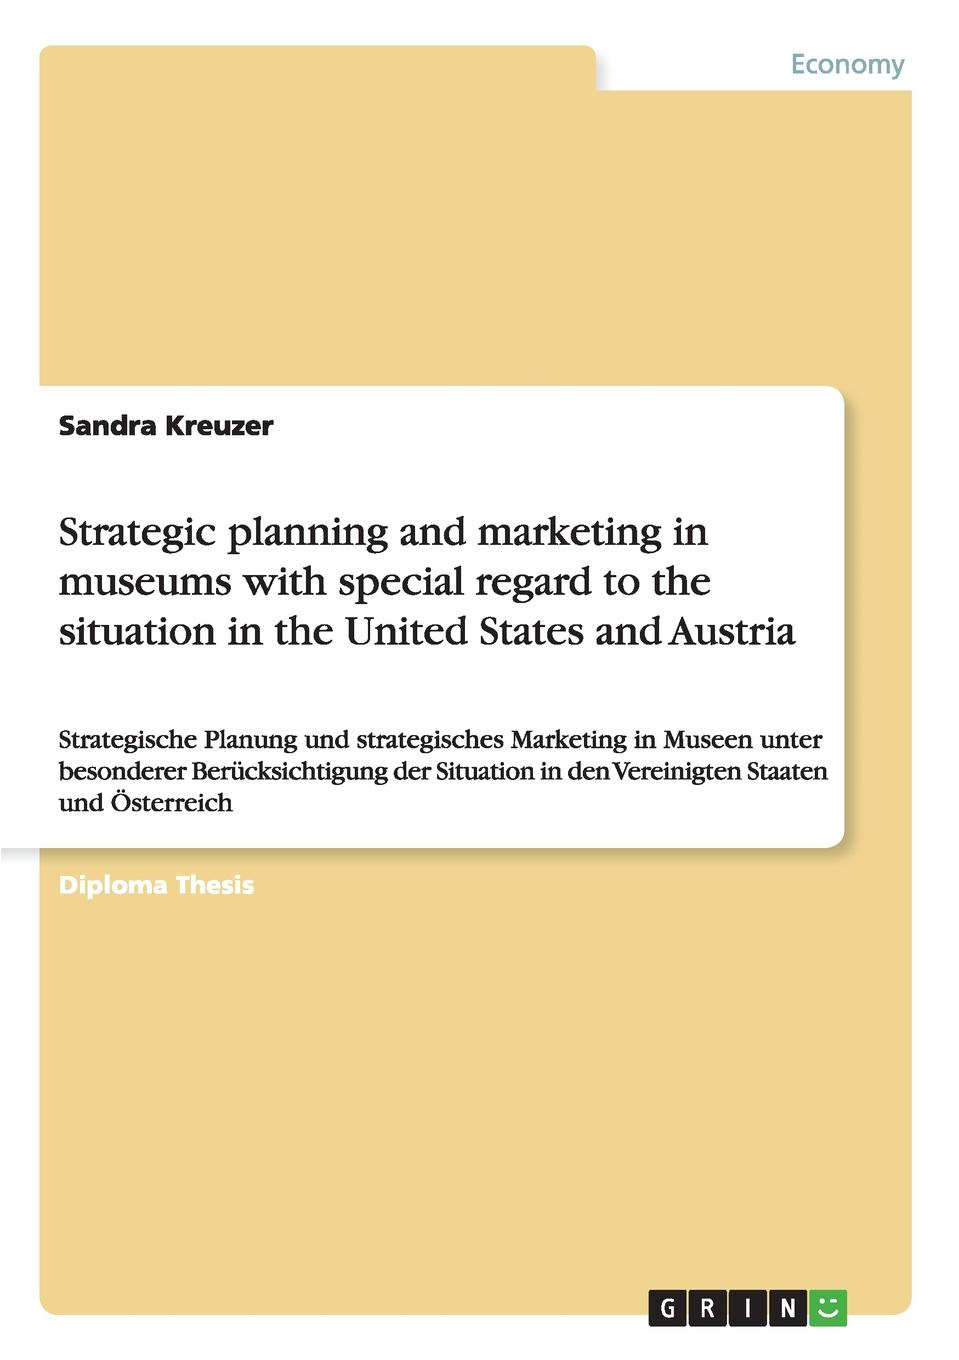 Sandra Kreuzer Strategic planning and marketing in museums with special regard to the situation in the United States and Austria jennifer barrett museums and the public sphere